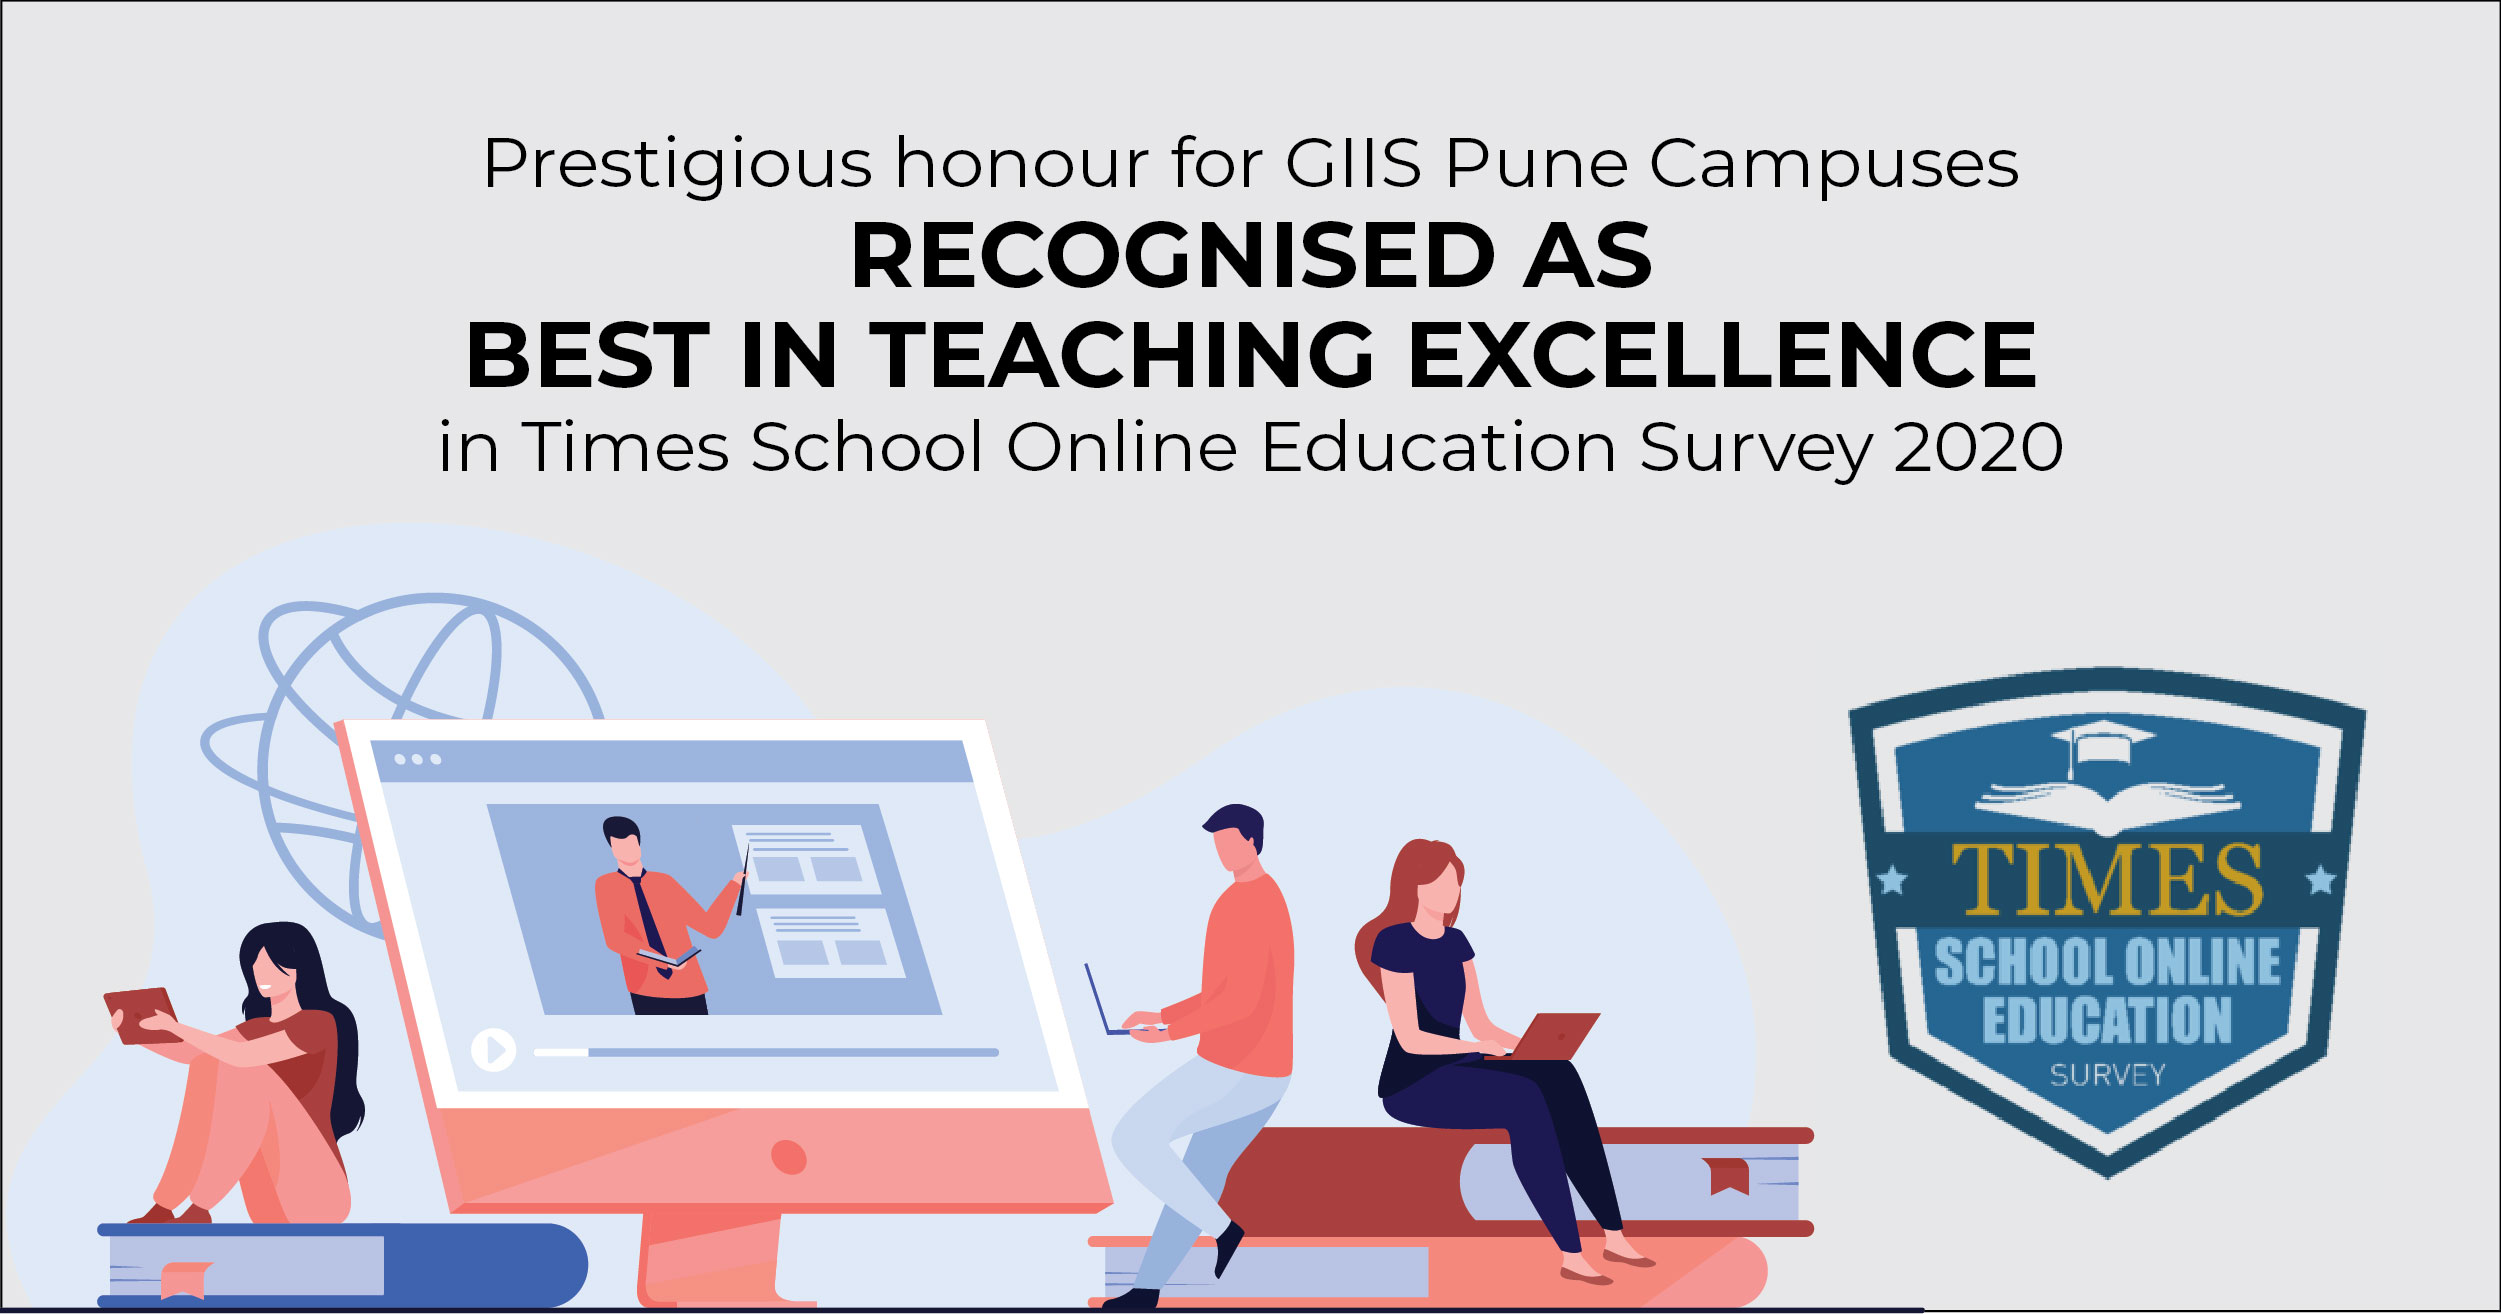 GIIS Pune Best in Teaching Excellence in Times School Online Education Survey